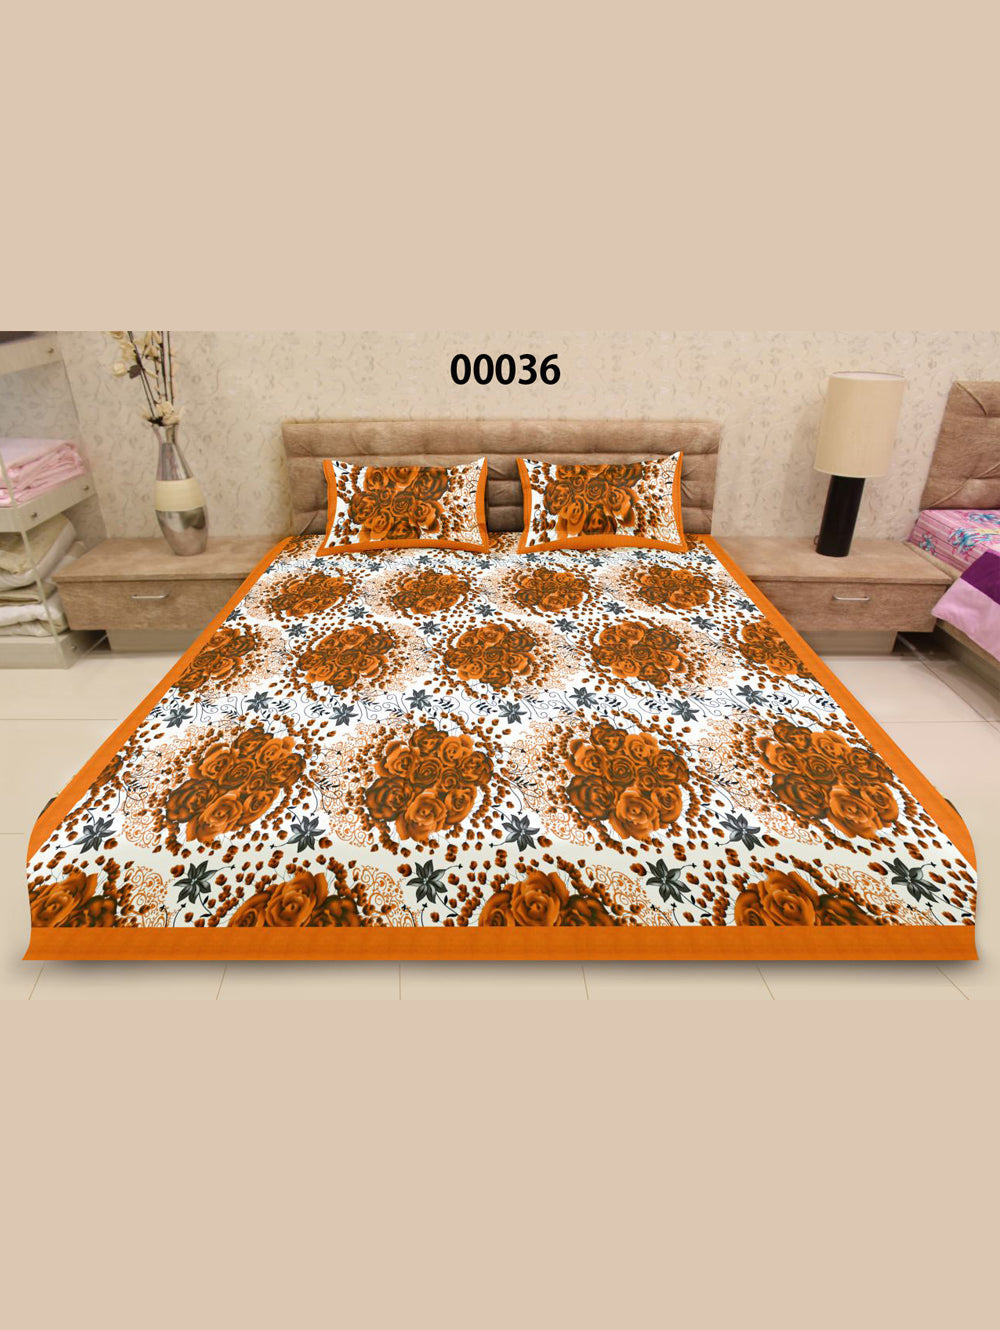 00036DarkOrange and White Ethnic Cotton Queen Size Floral Bedsheet With 2 Pillow Covers